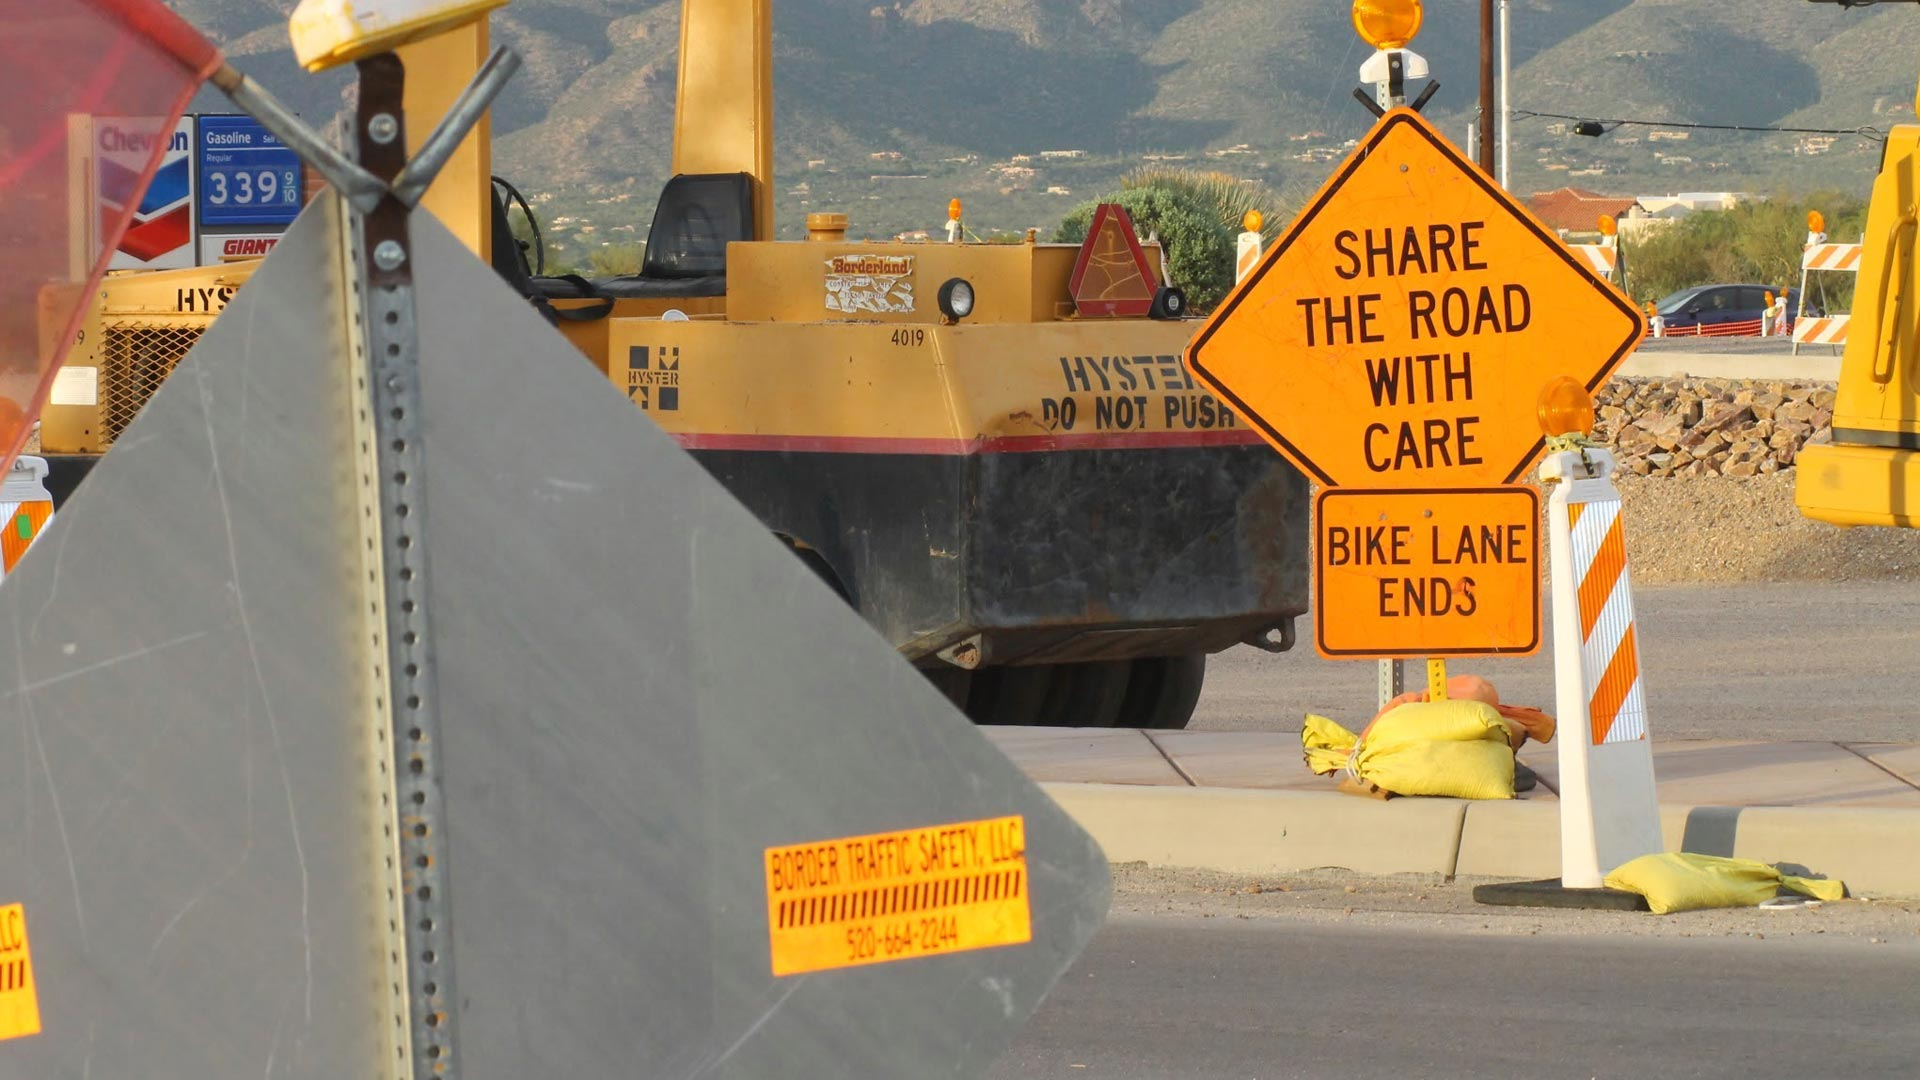 $900 million could address repairs and construction Pima County roads over the next 10 years.